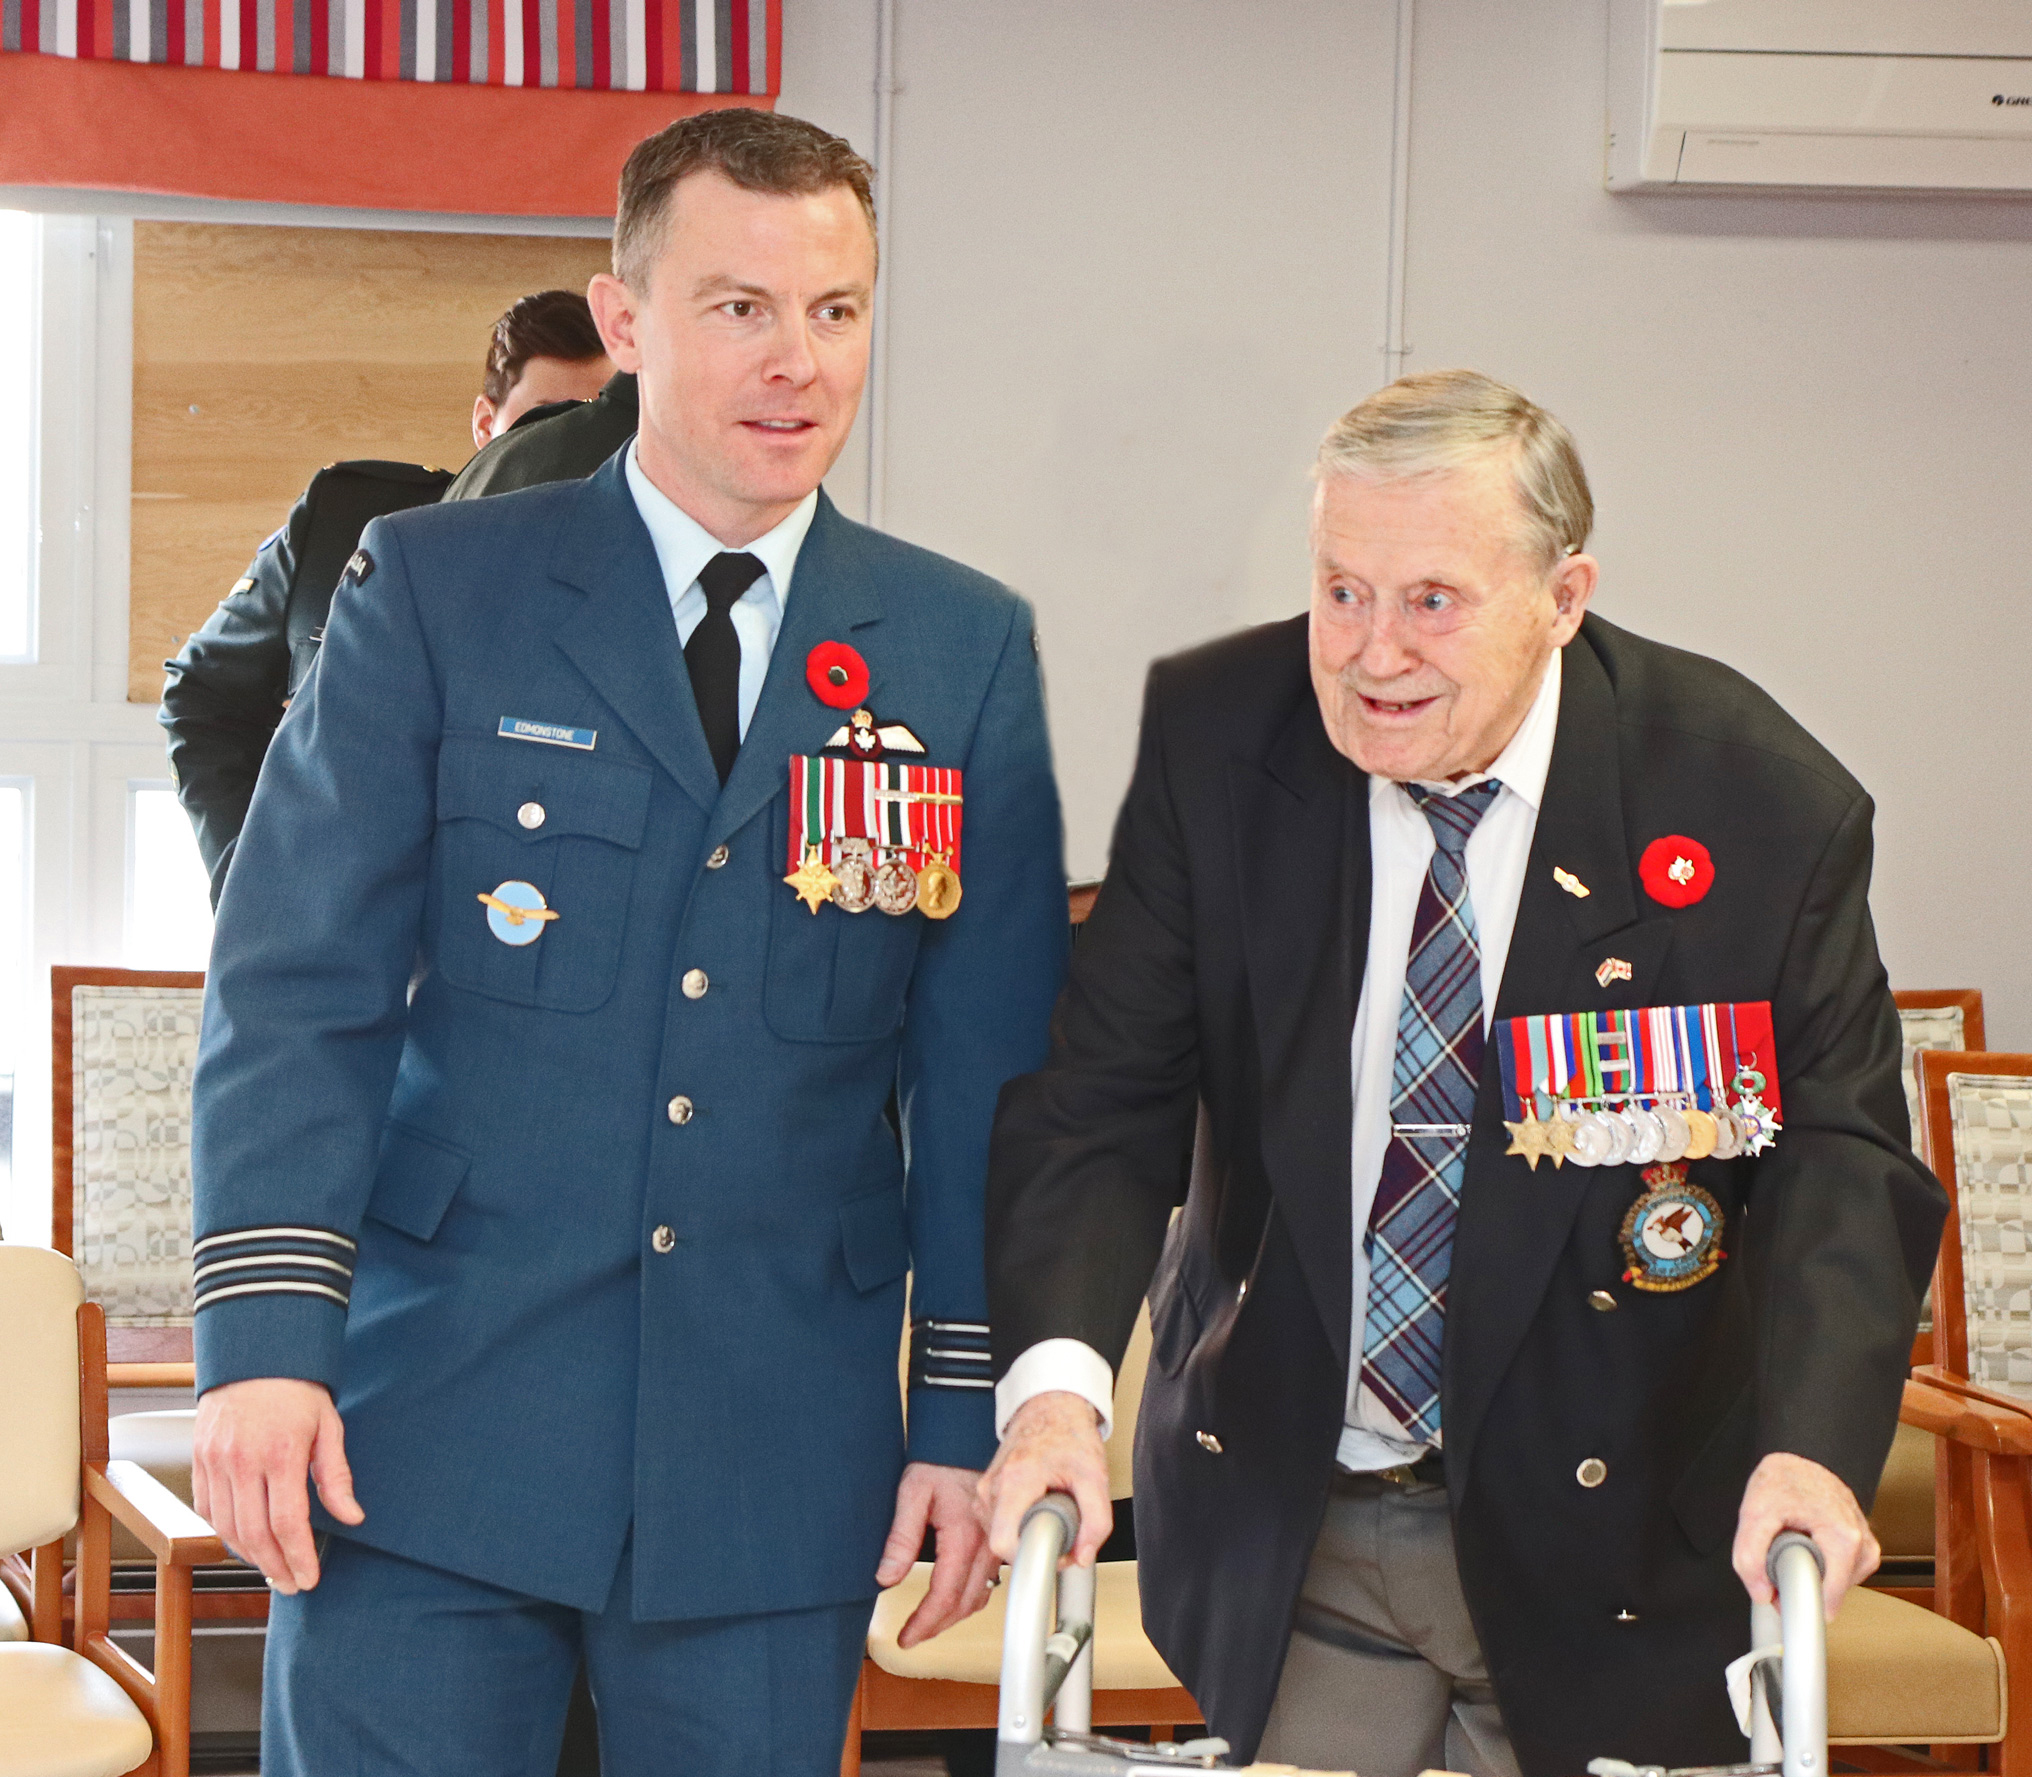 A man wearing an air force uniform stands beside an older man leaning on a metal walker and wearing a blazer and air force tartan tie. Both have several medals on their jackets.